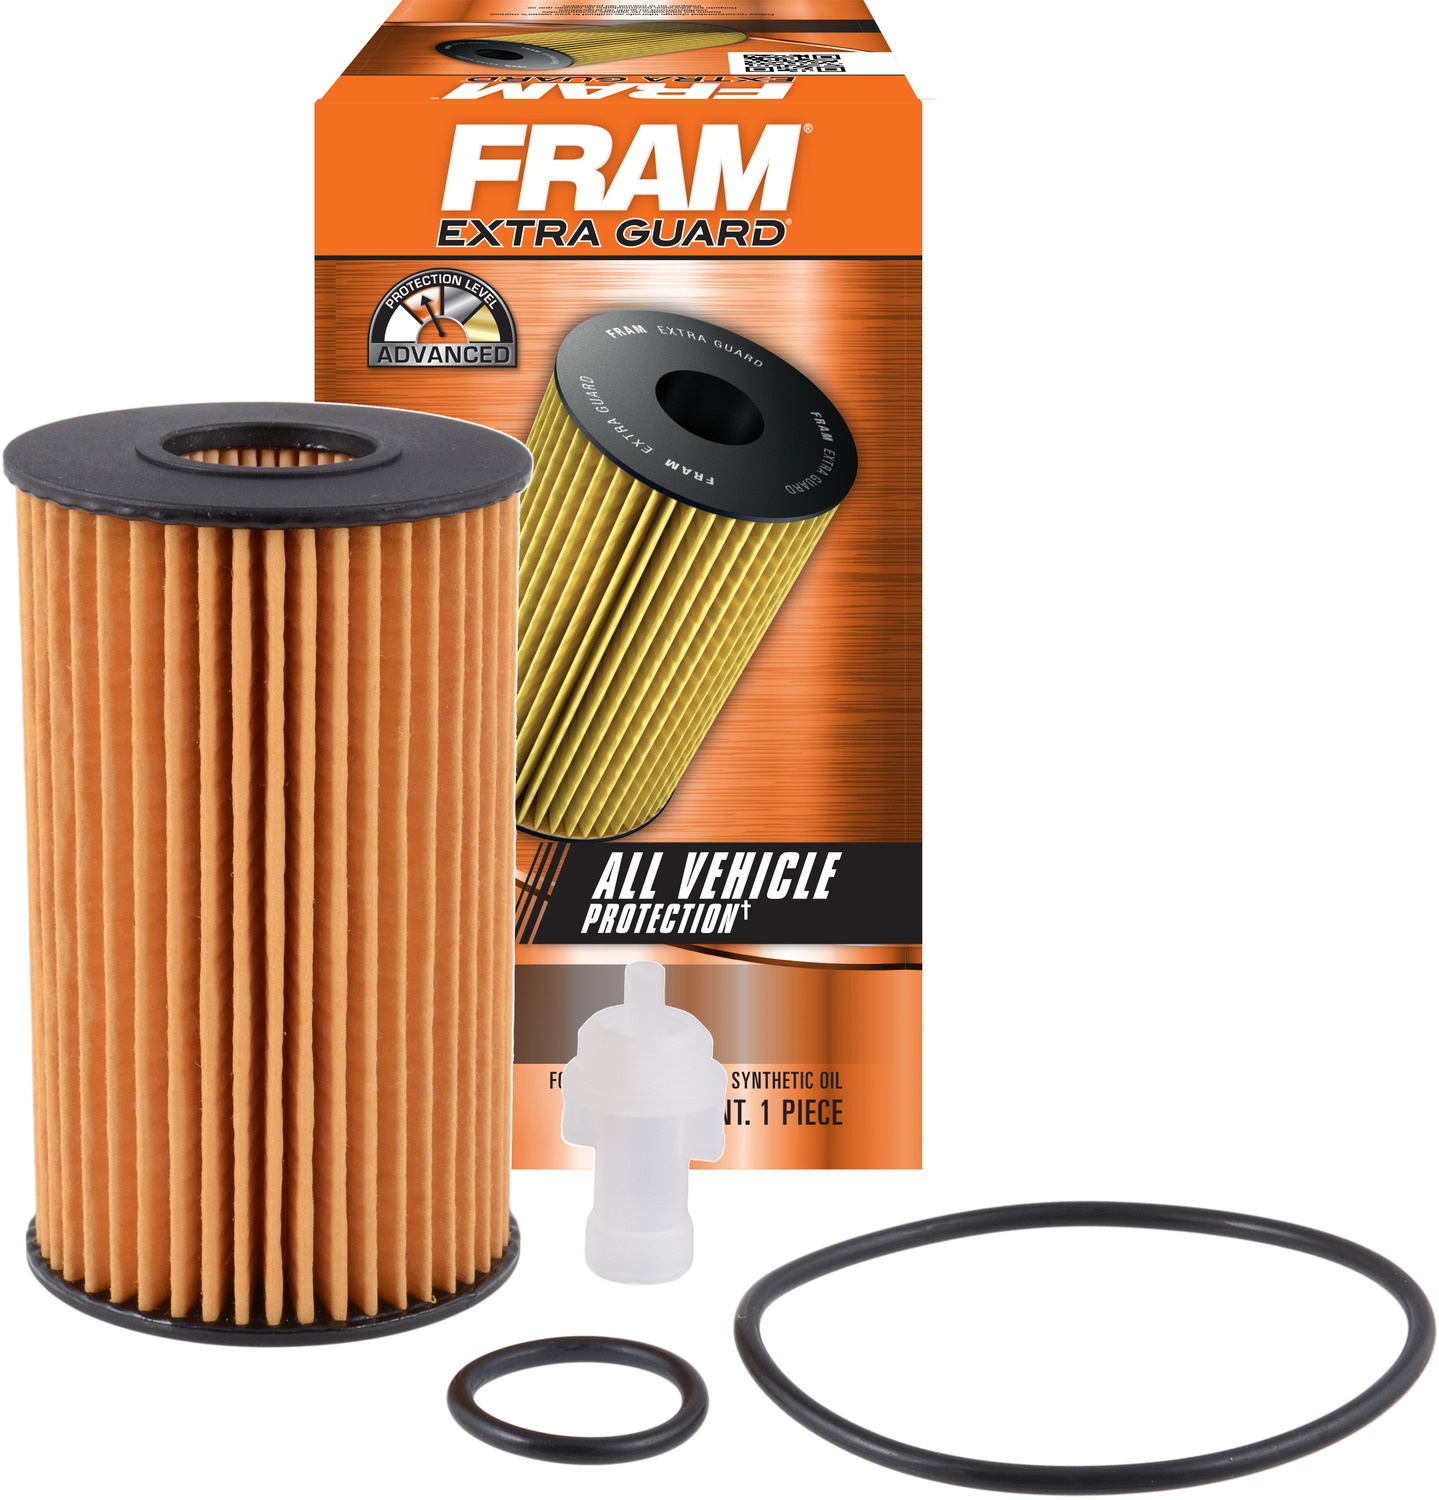 FRAM Extra Guard Oil Filter, CH10295